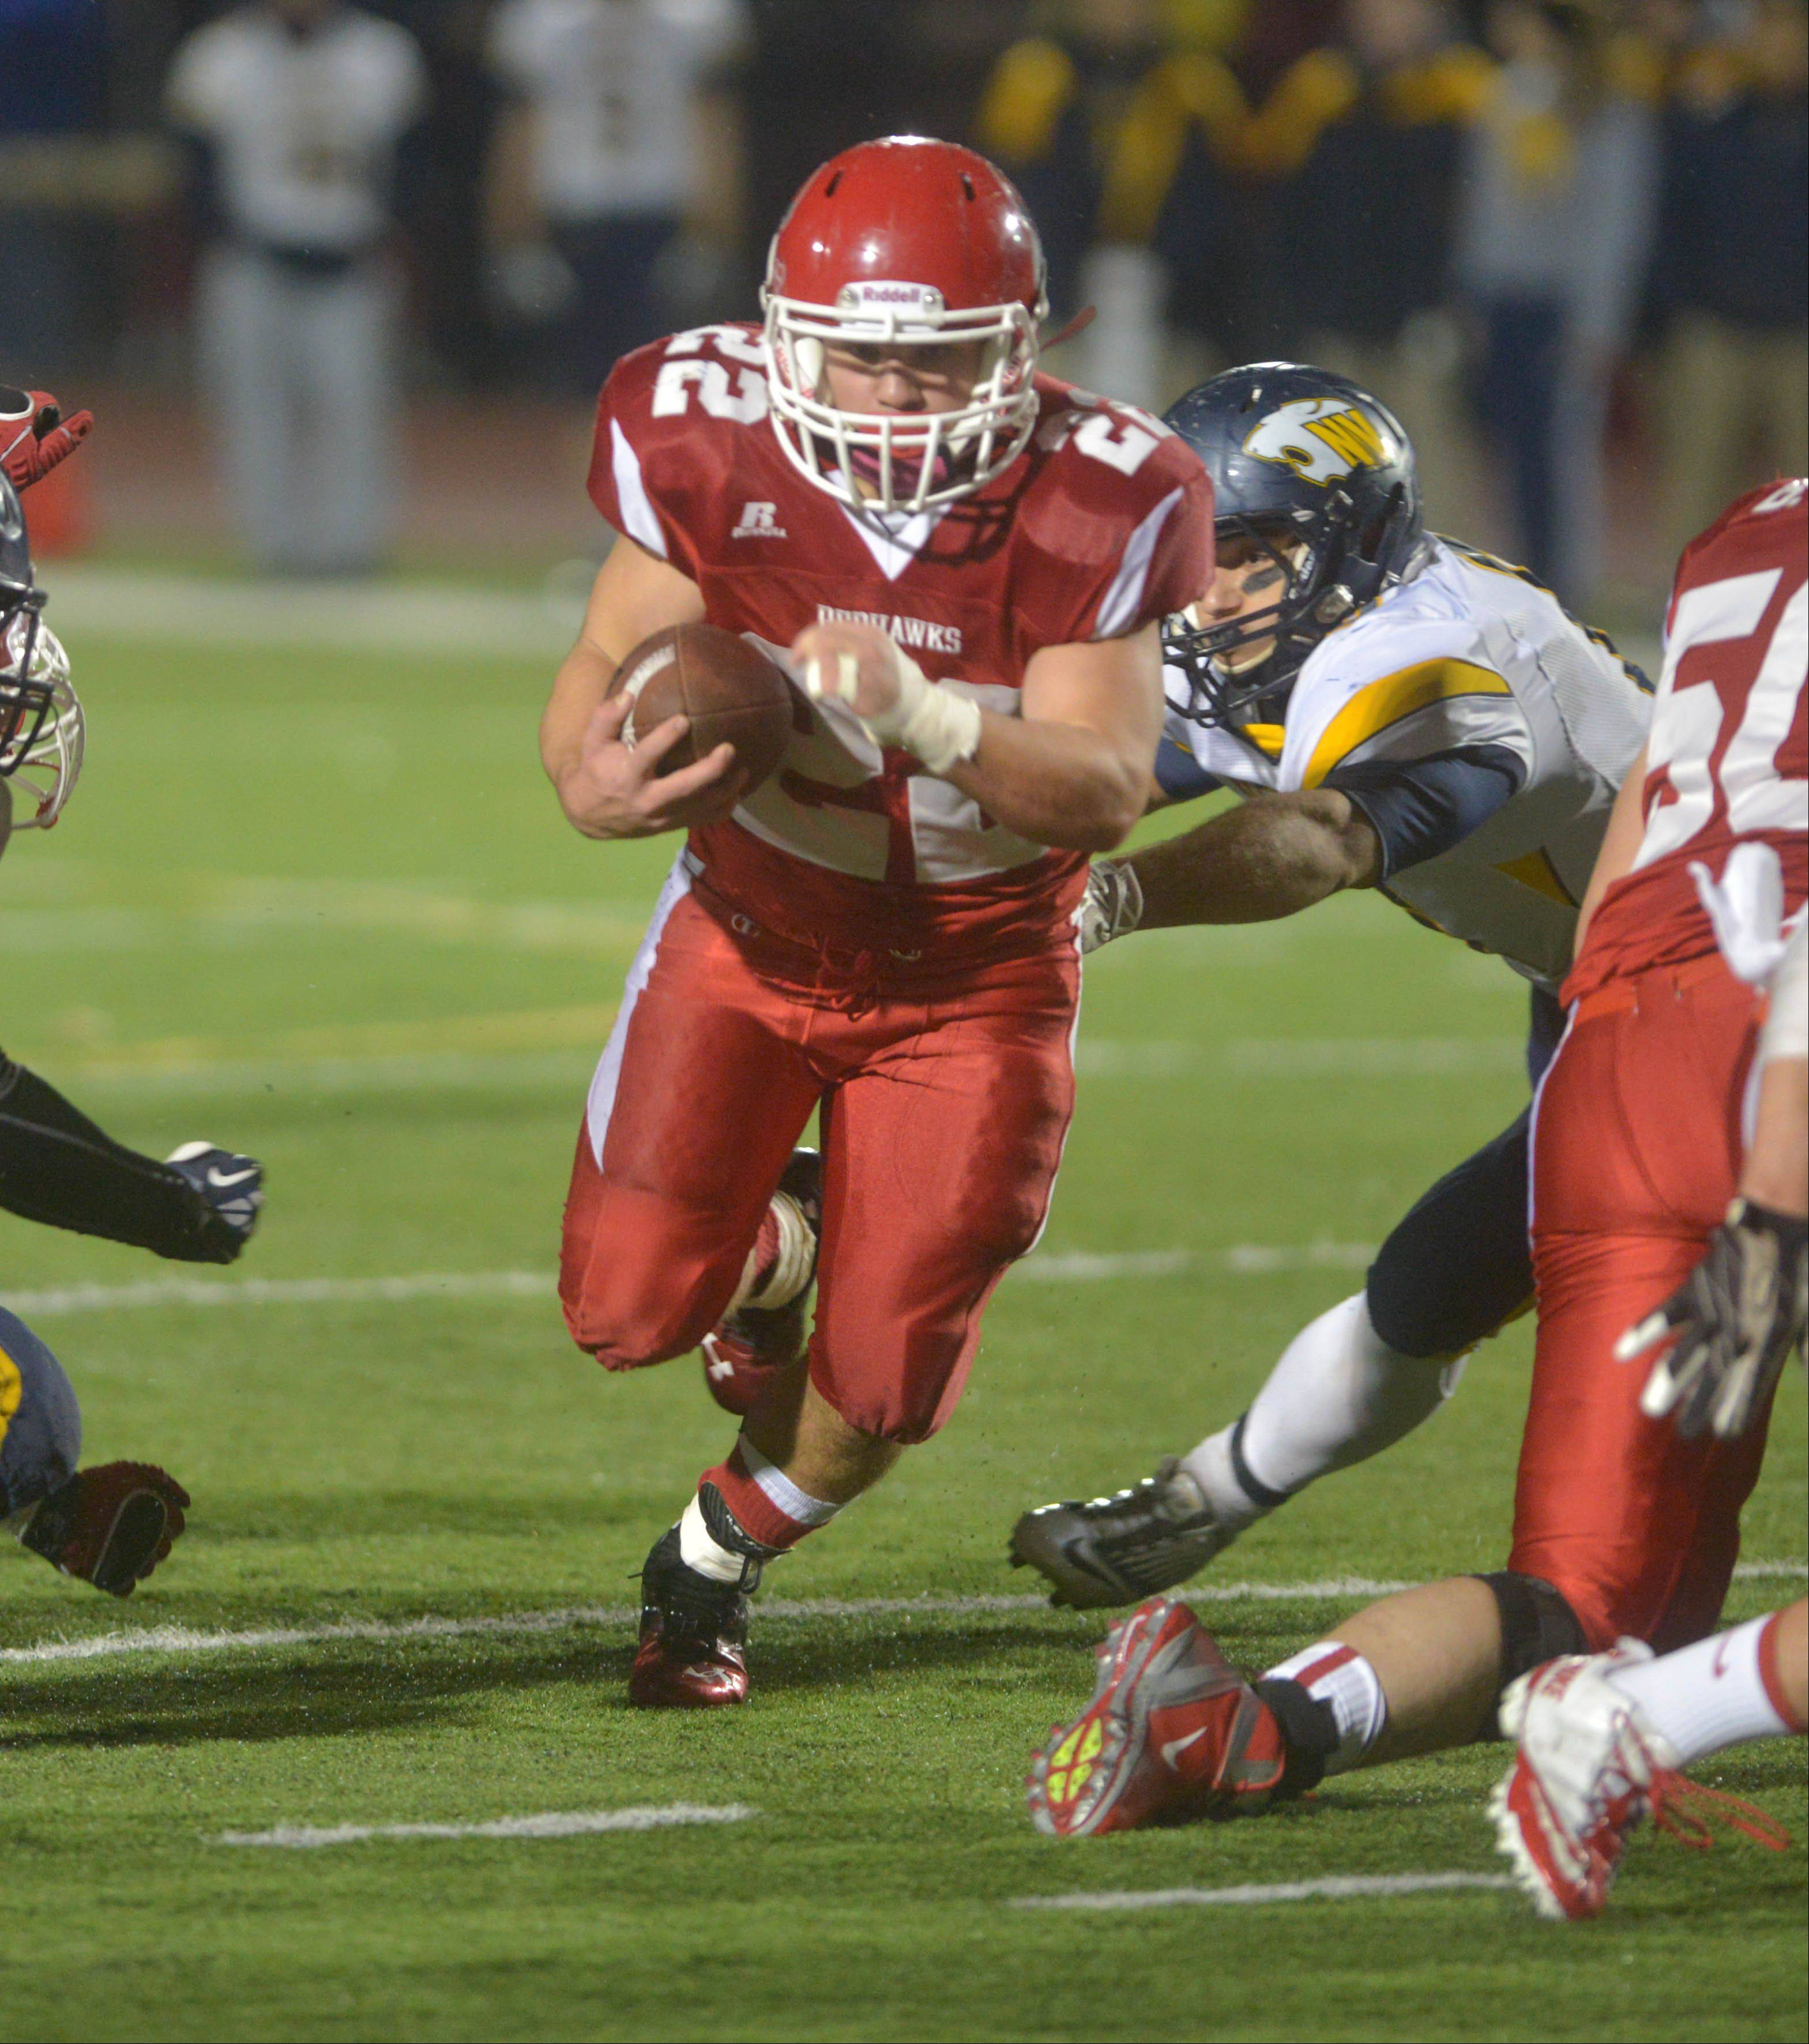 Kevin Clifford of Naperville Central picks up yardage against Neuqua Valley in Class 8A quarterfinal action Saturday.